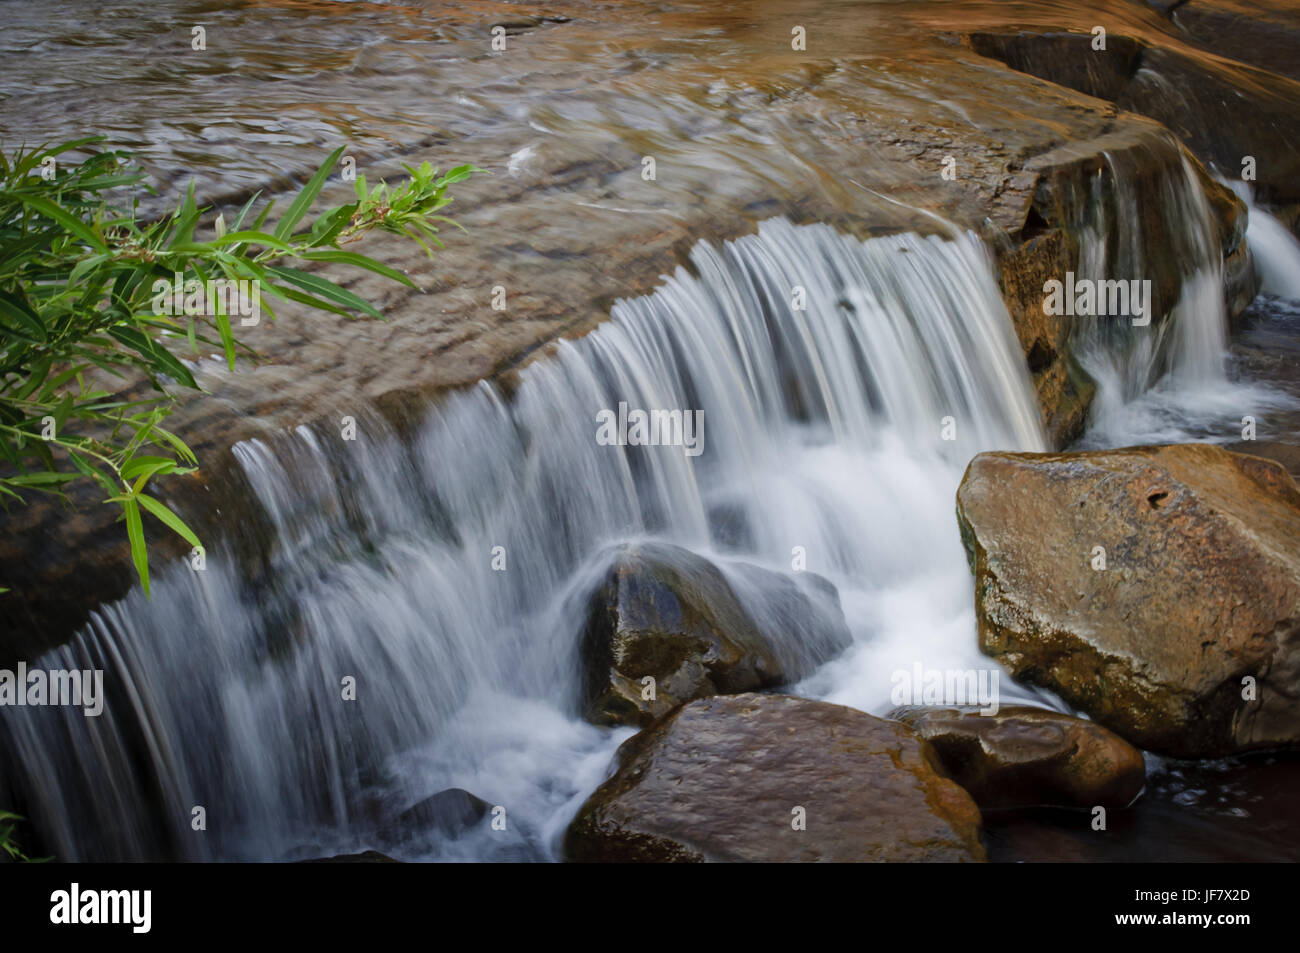 Fresh water flowing over rocks on a creek. - Stock Image